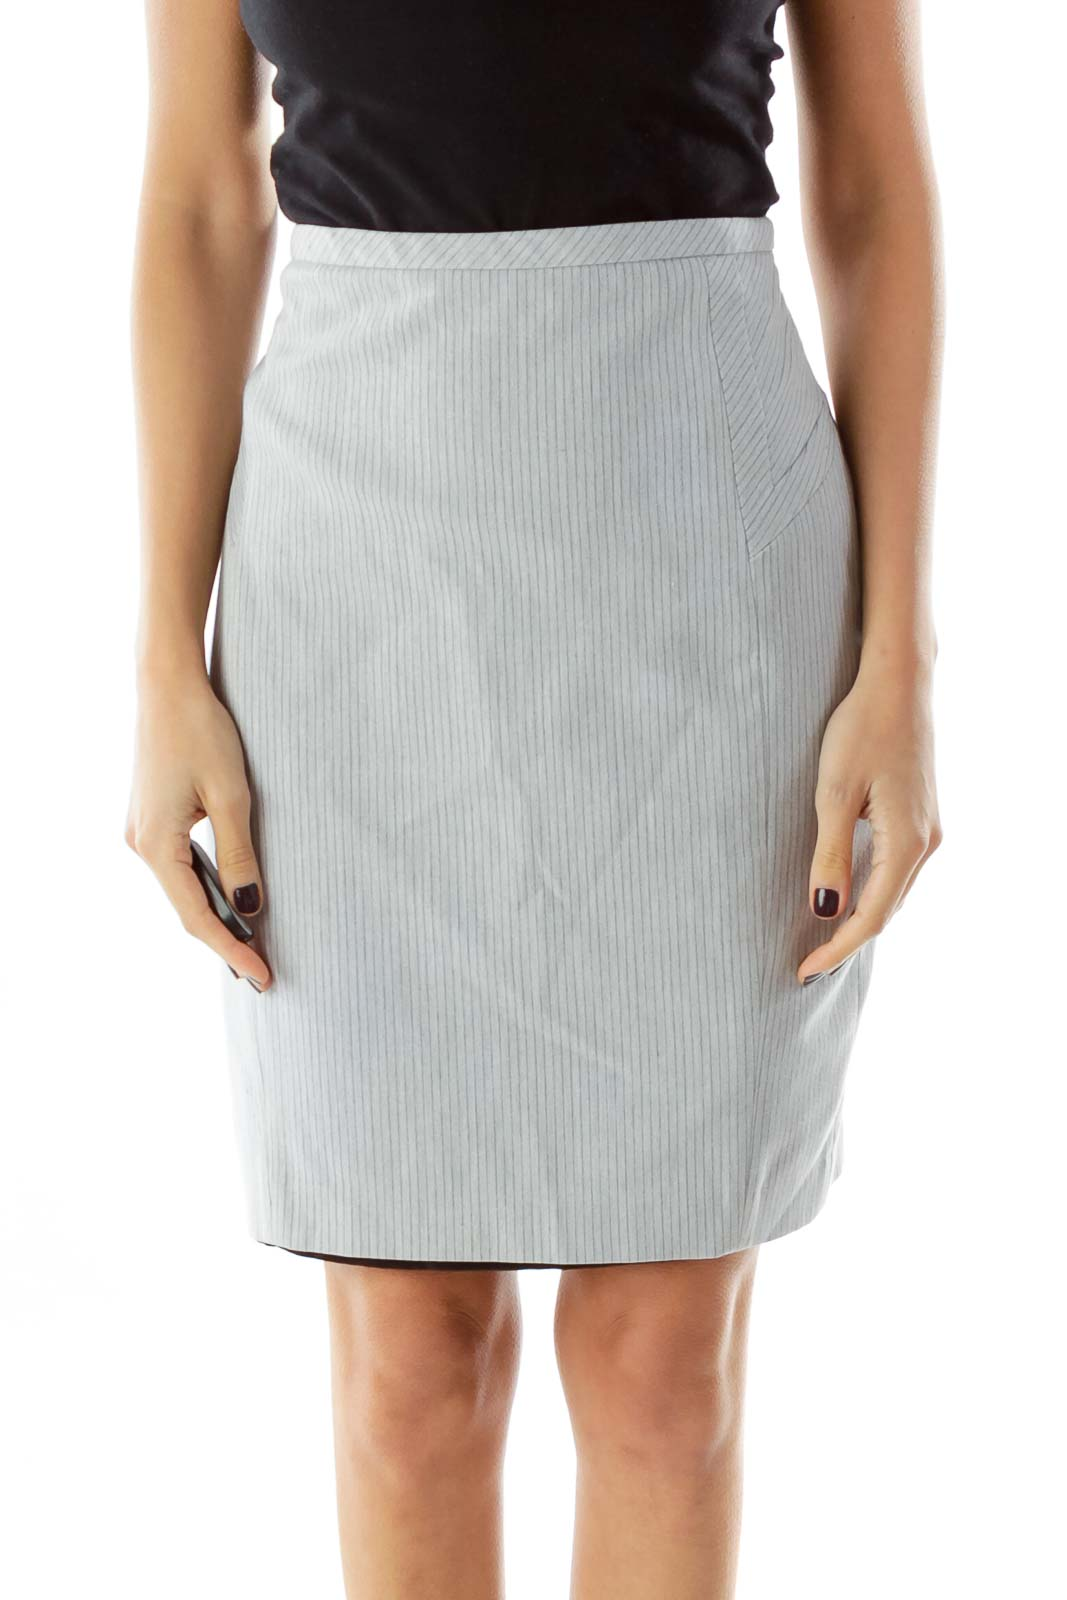 Gray Striped Pencil Skirt